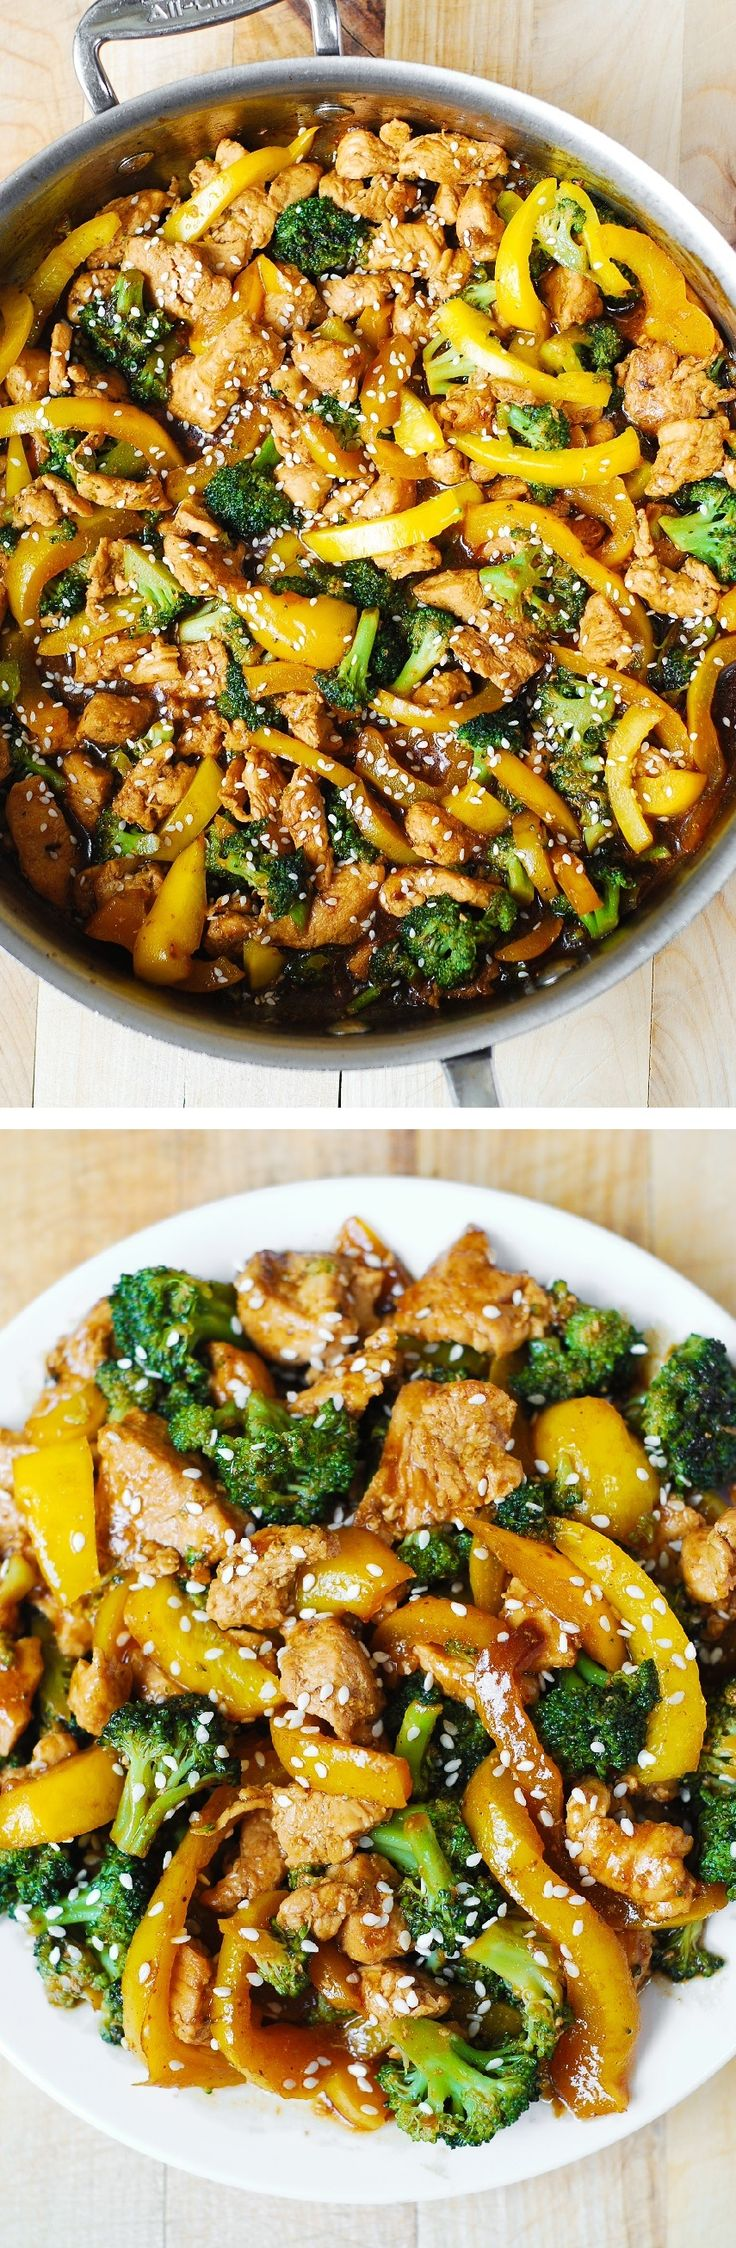 Best 25 Chicken Broccoli Stir Fry Ideas On Pinterest -8458